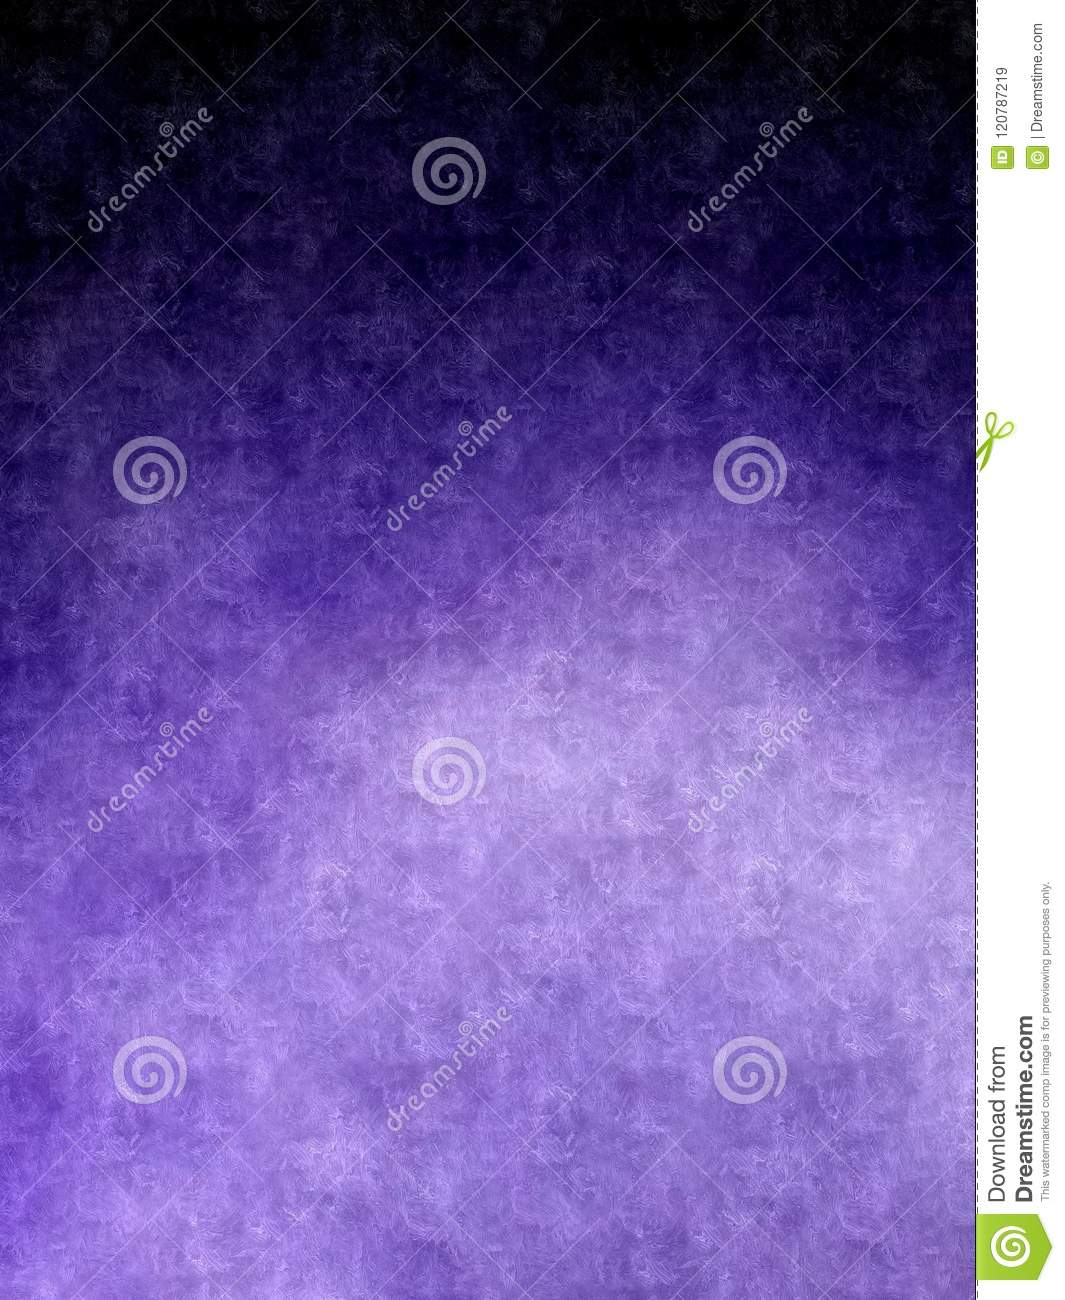 Beautiful background, wallpaper, light and dark purple ombre, abstract, waves, paint